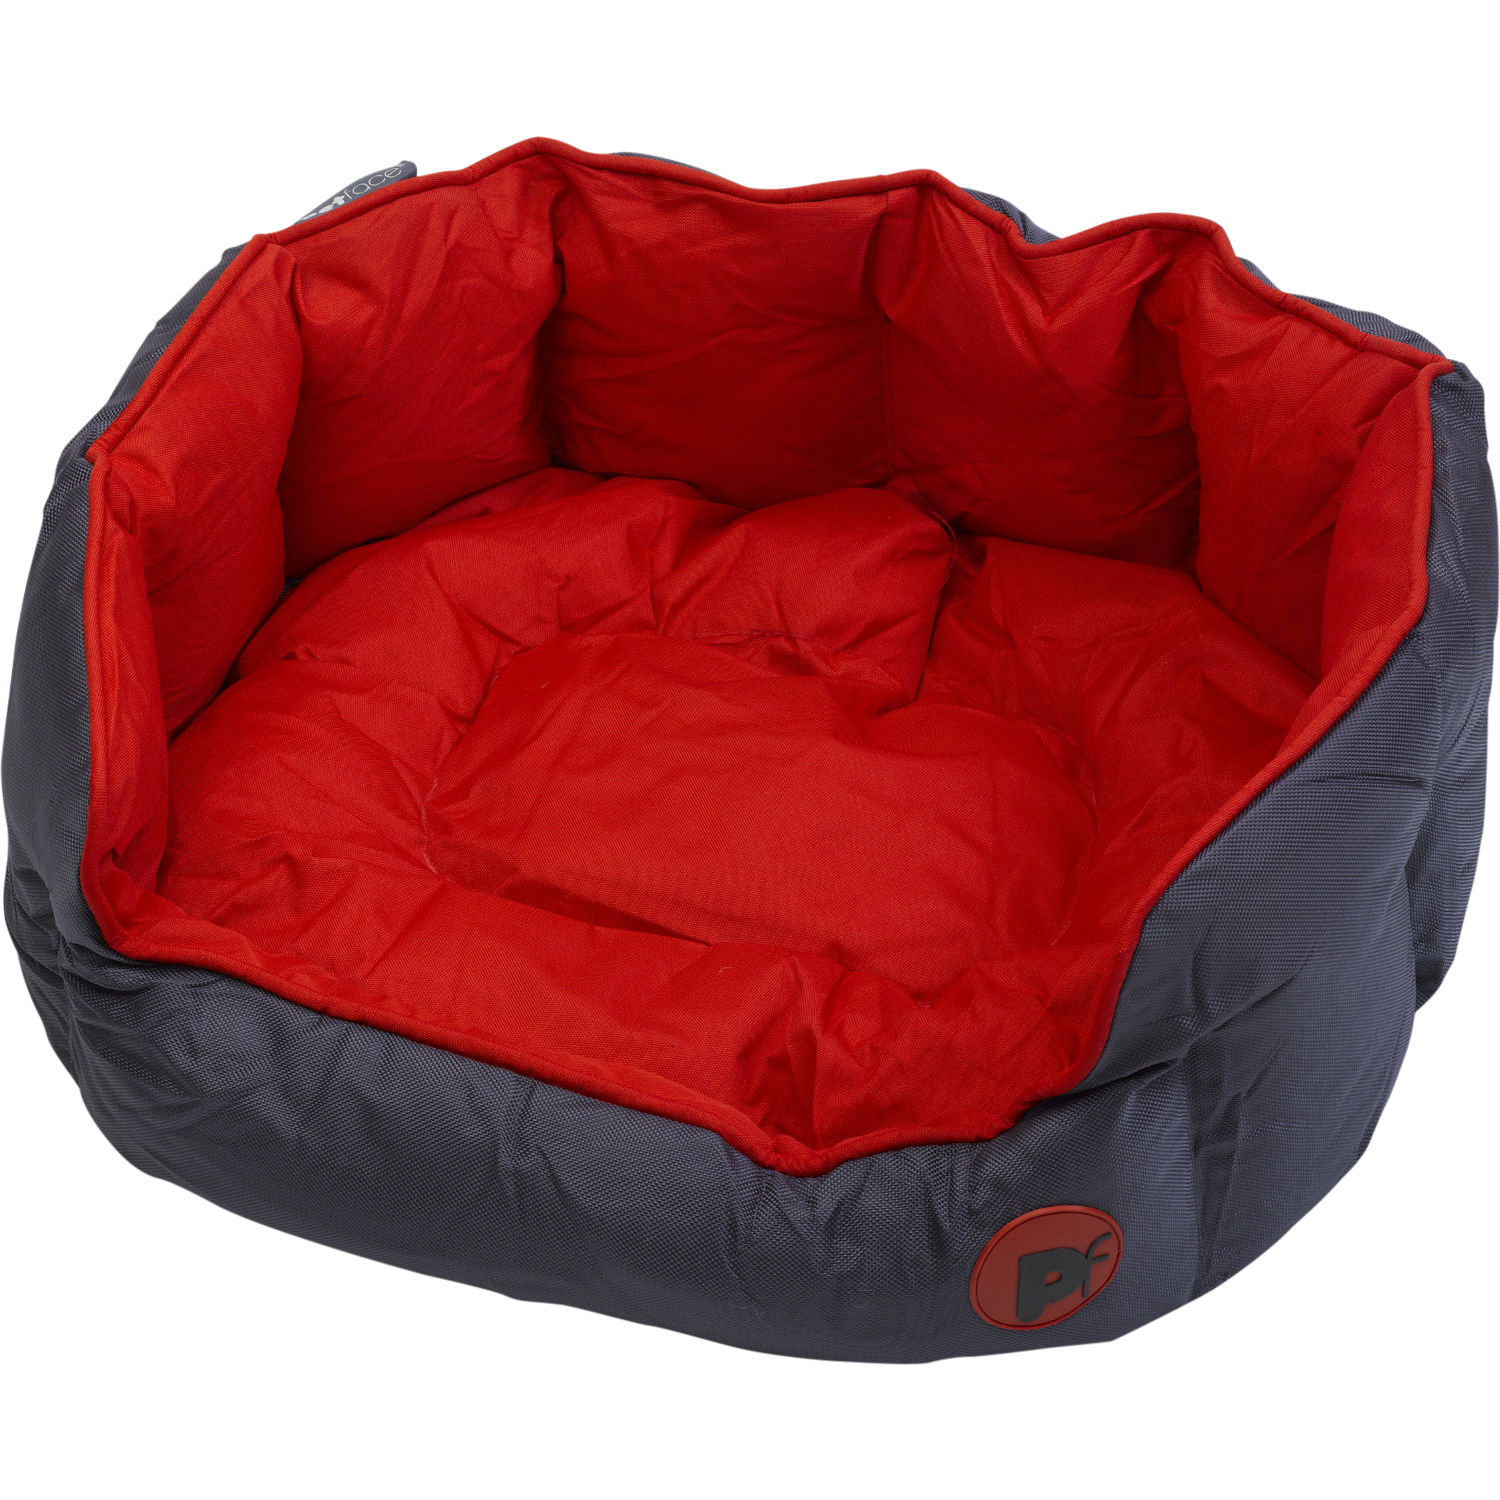 062609afd24d Petface Waterproof Oxford Pet Bed Puppy Dog Luxury Bedding ...